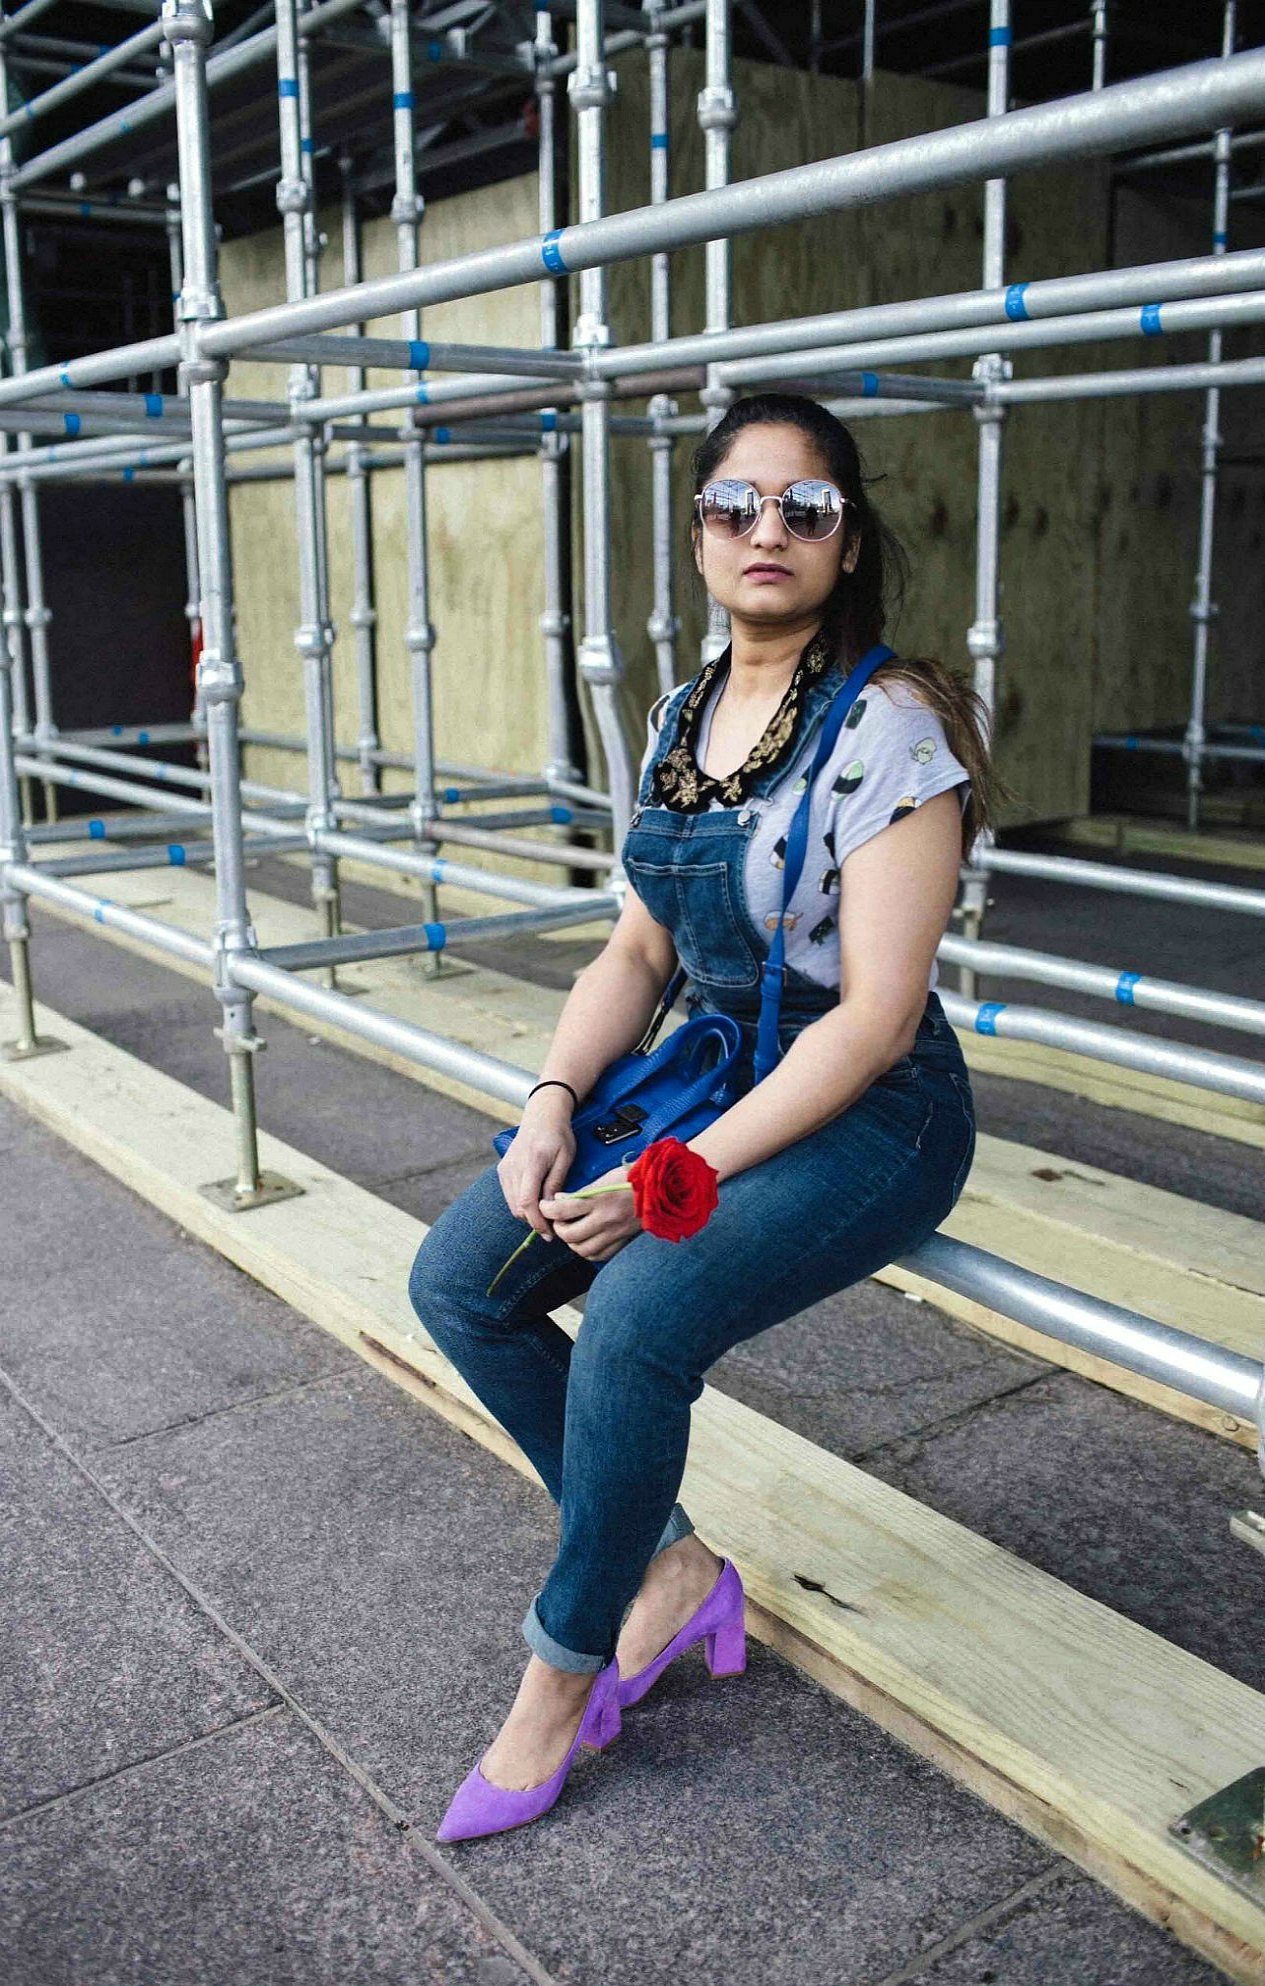 Lifestyle blogger suri of dreaming loud sharing how to wear overalls in a quirky and colorful way | H&M Overalls outfit featured by popular Ohio modest fashion blogger, Dreaming Loud